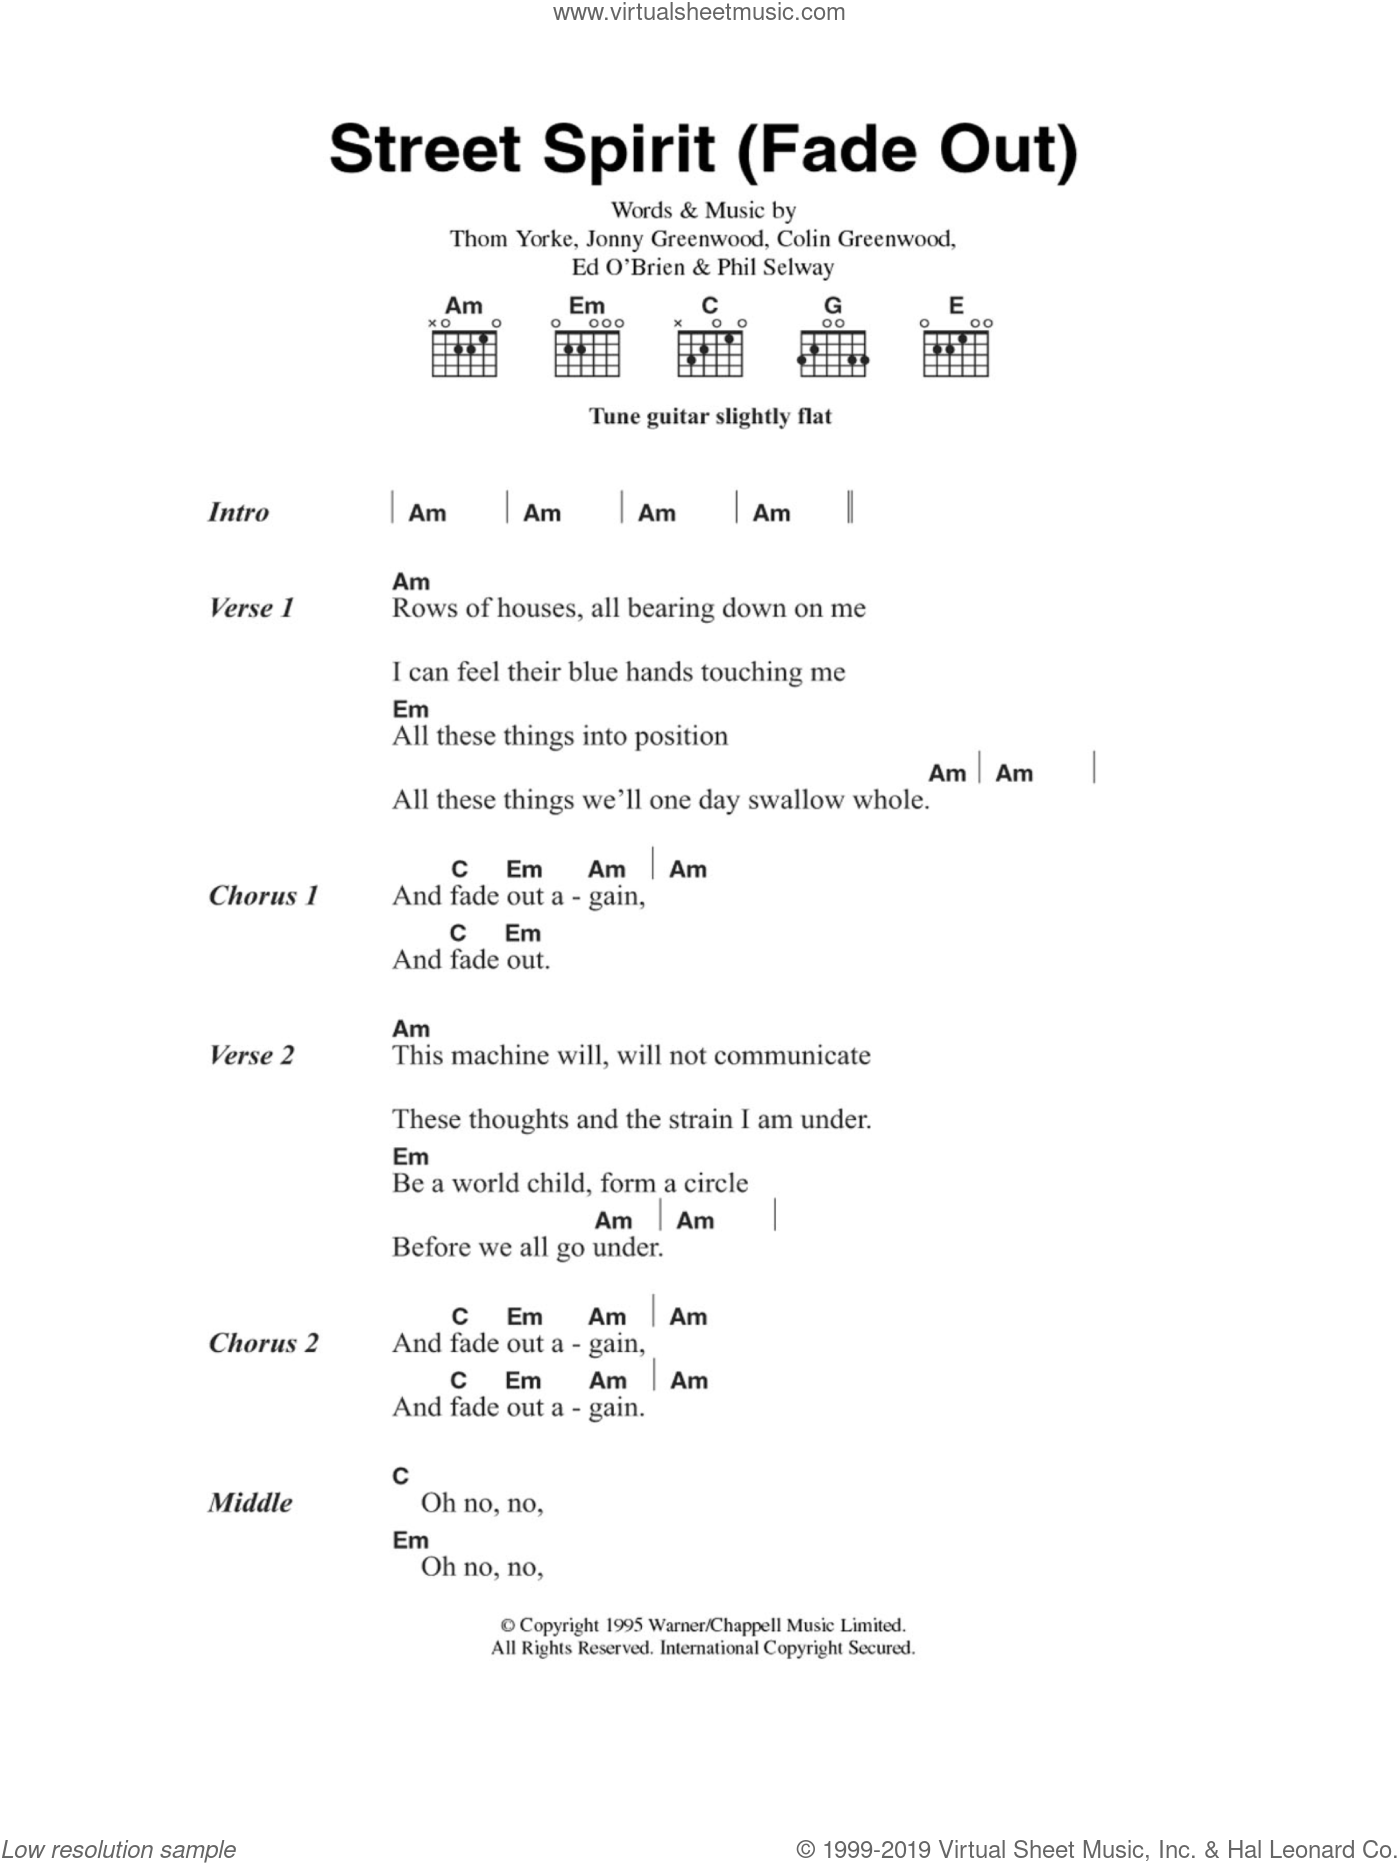 Radiohead - Street Spirit (Fade Out) sheet music for guitar (chords)